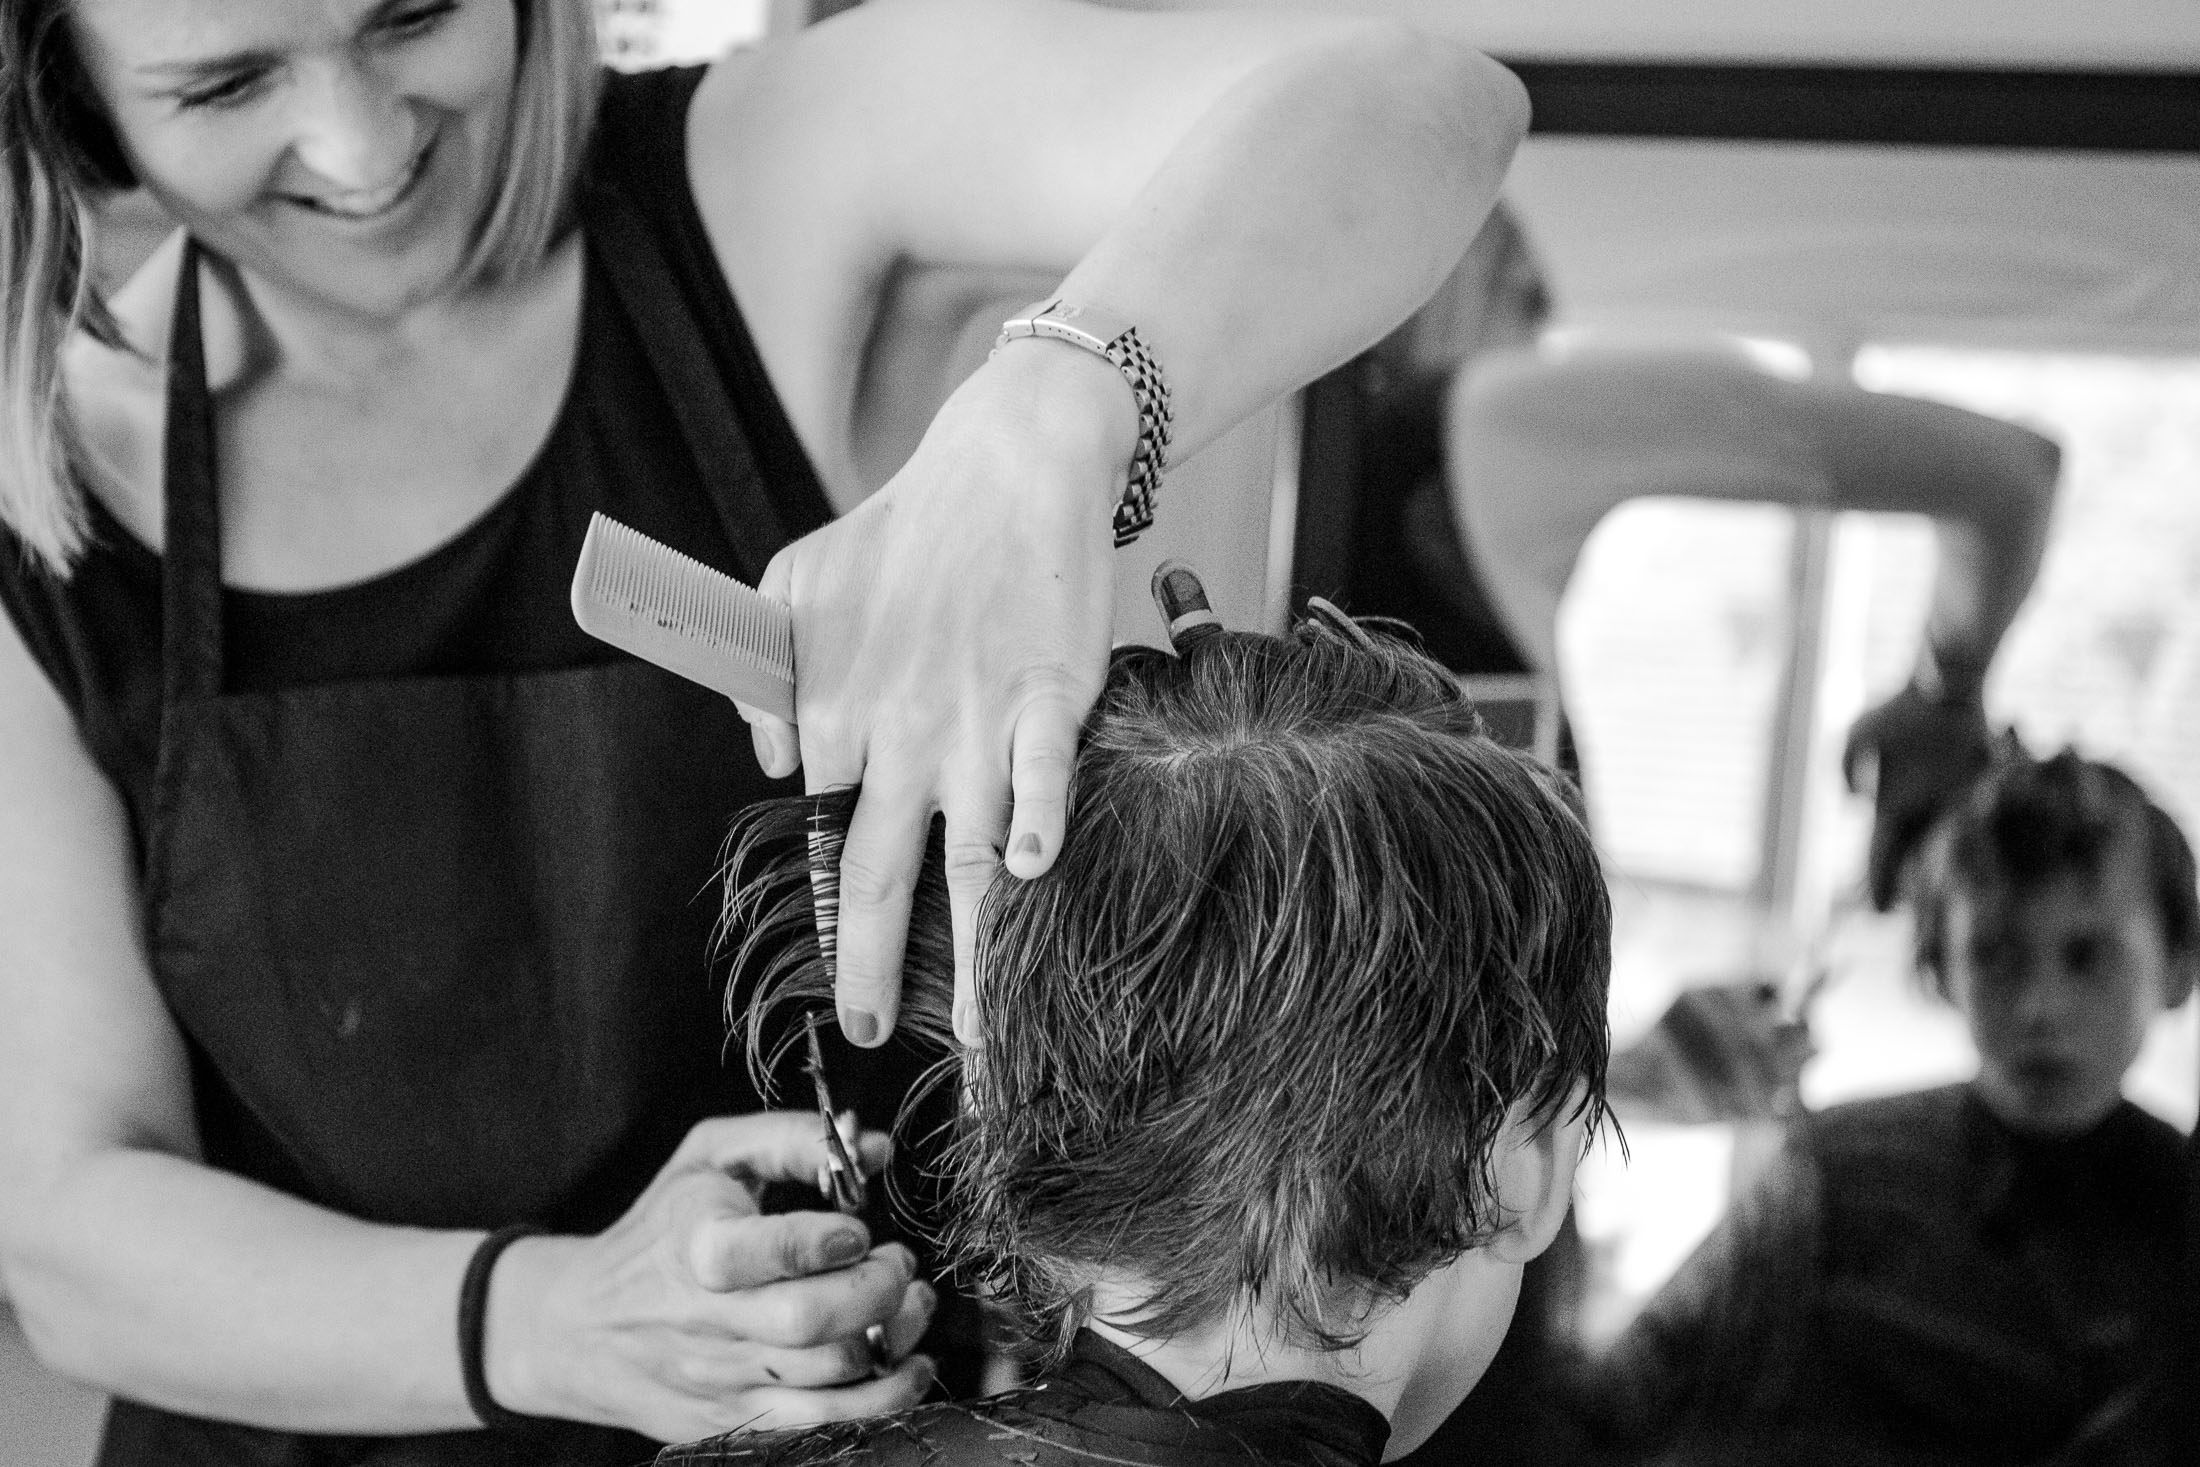 Commercial_photography_hair_and_makeup_cutting_bw.jpg